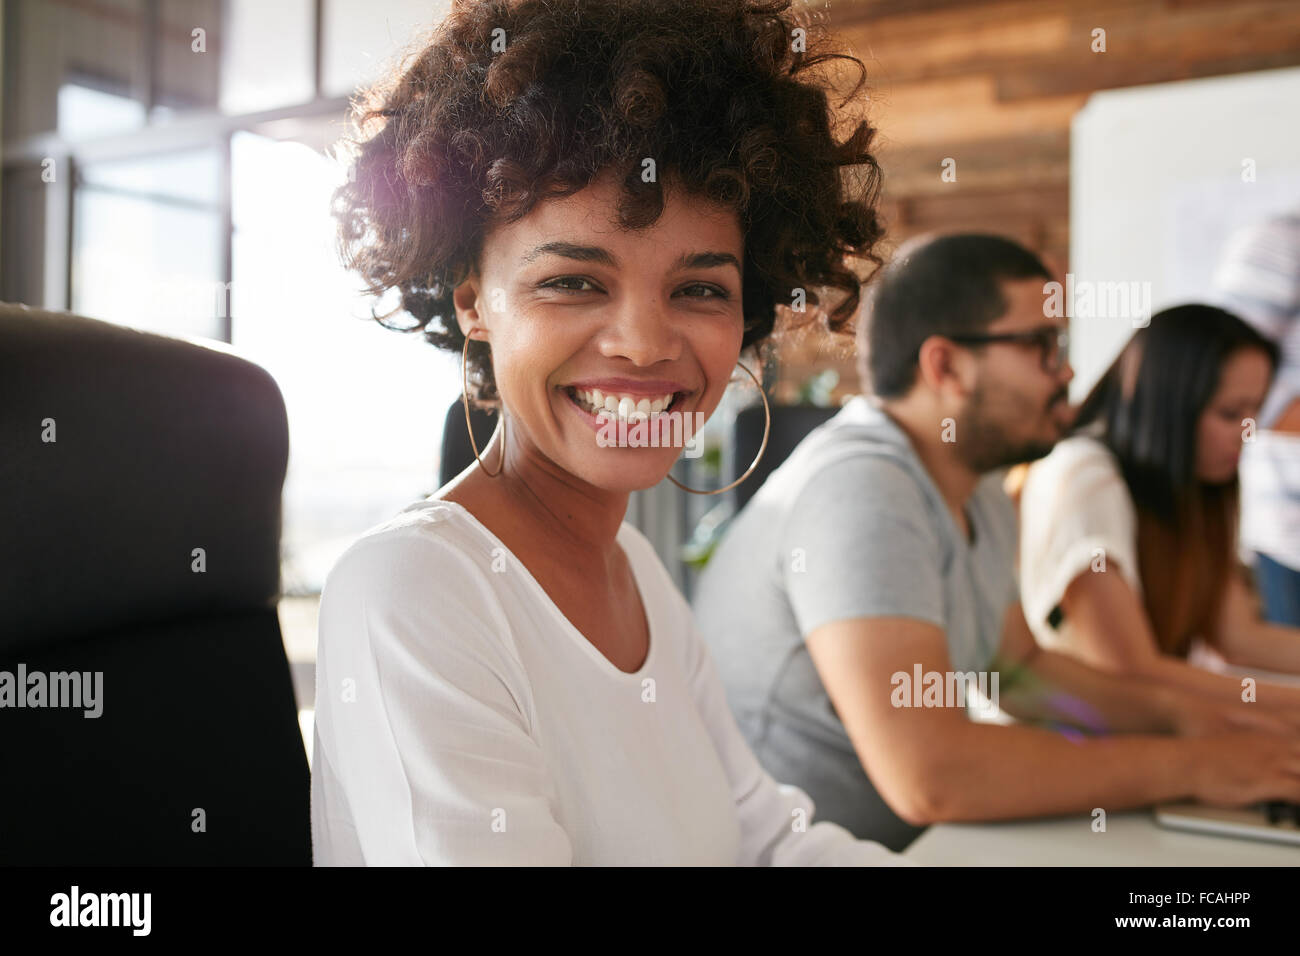 Closeup portrait of cheerful young african woman sitting in conference room with coworkers in background. Creative - Stock Image